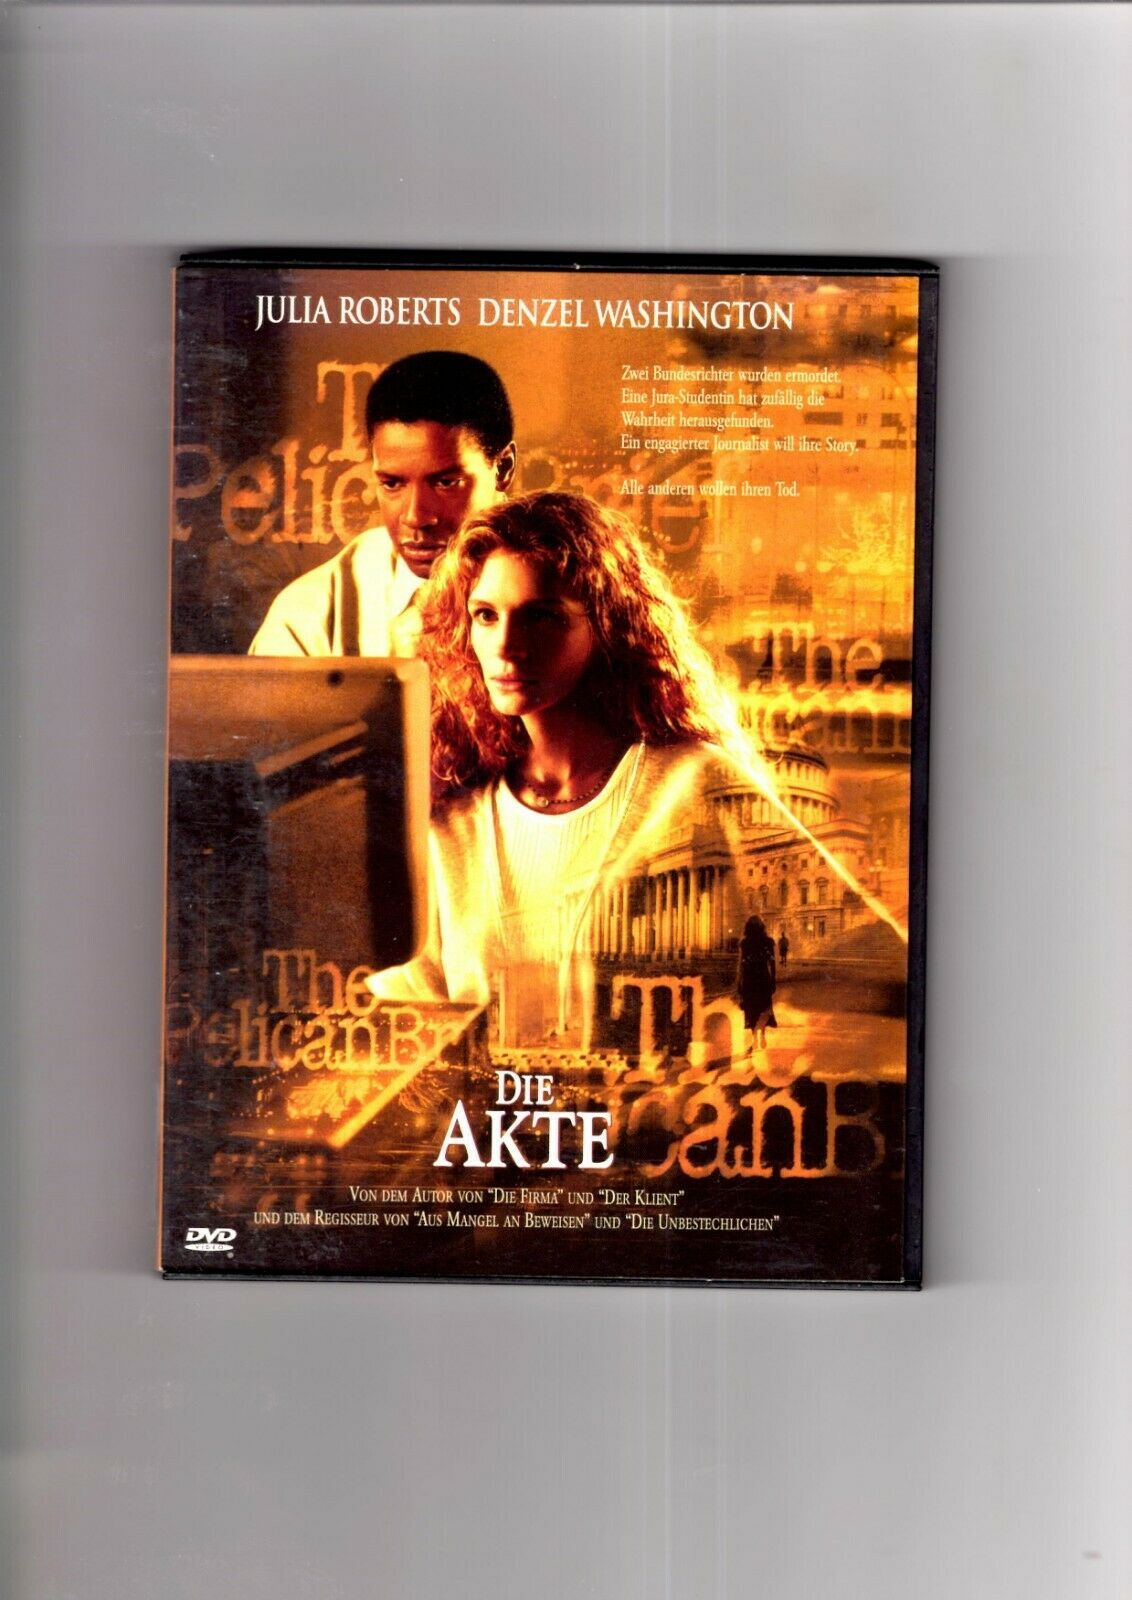 Die Akte - Denzel Washington, Julia Roberts (Snappercase) DVD